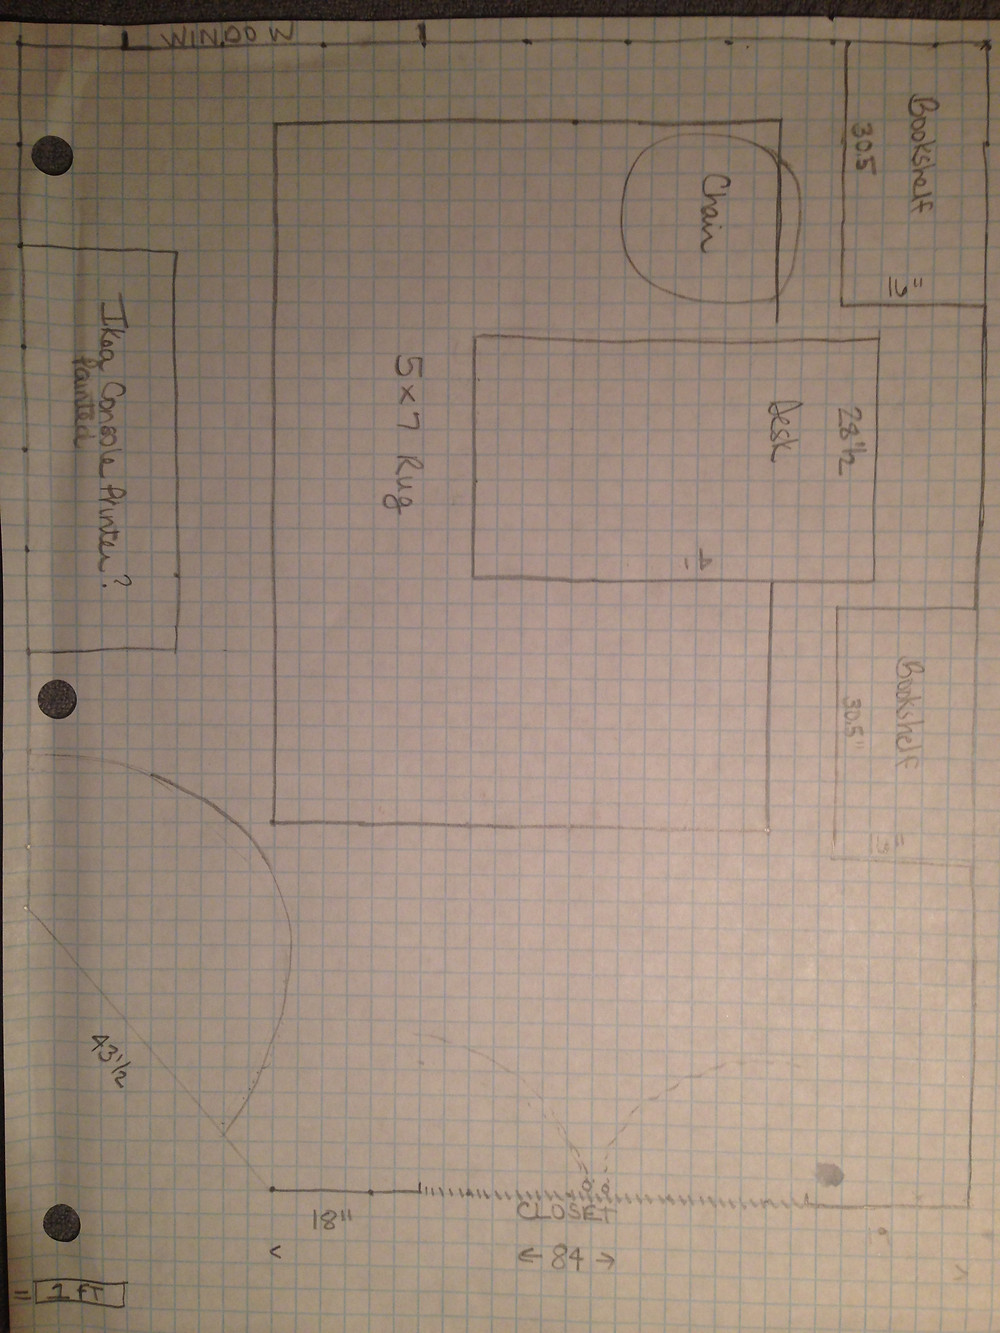 Furniture Layout on Grid Paper